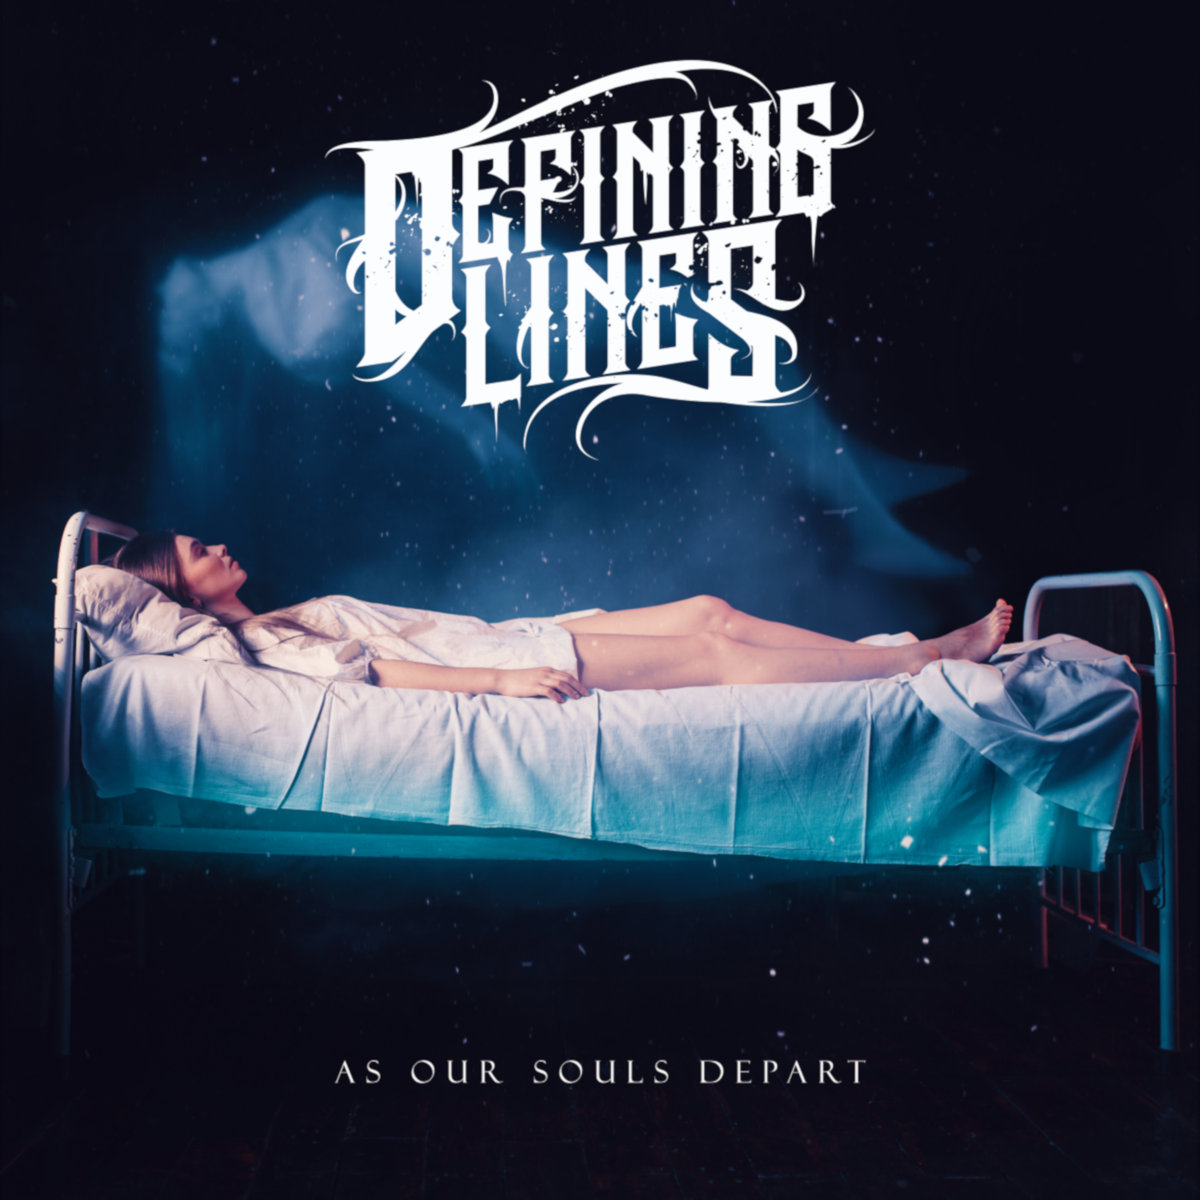 Defining Lines - As Our Souls Depart